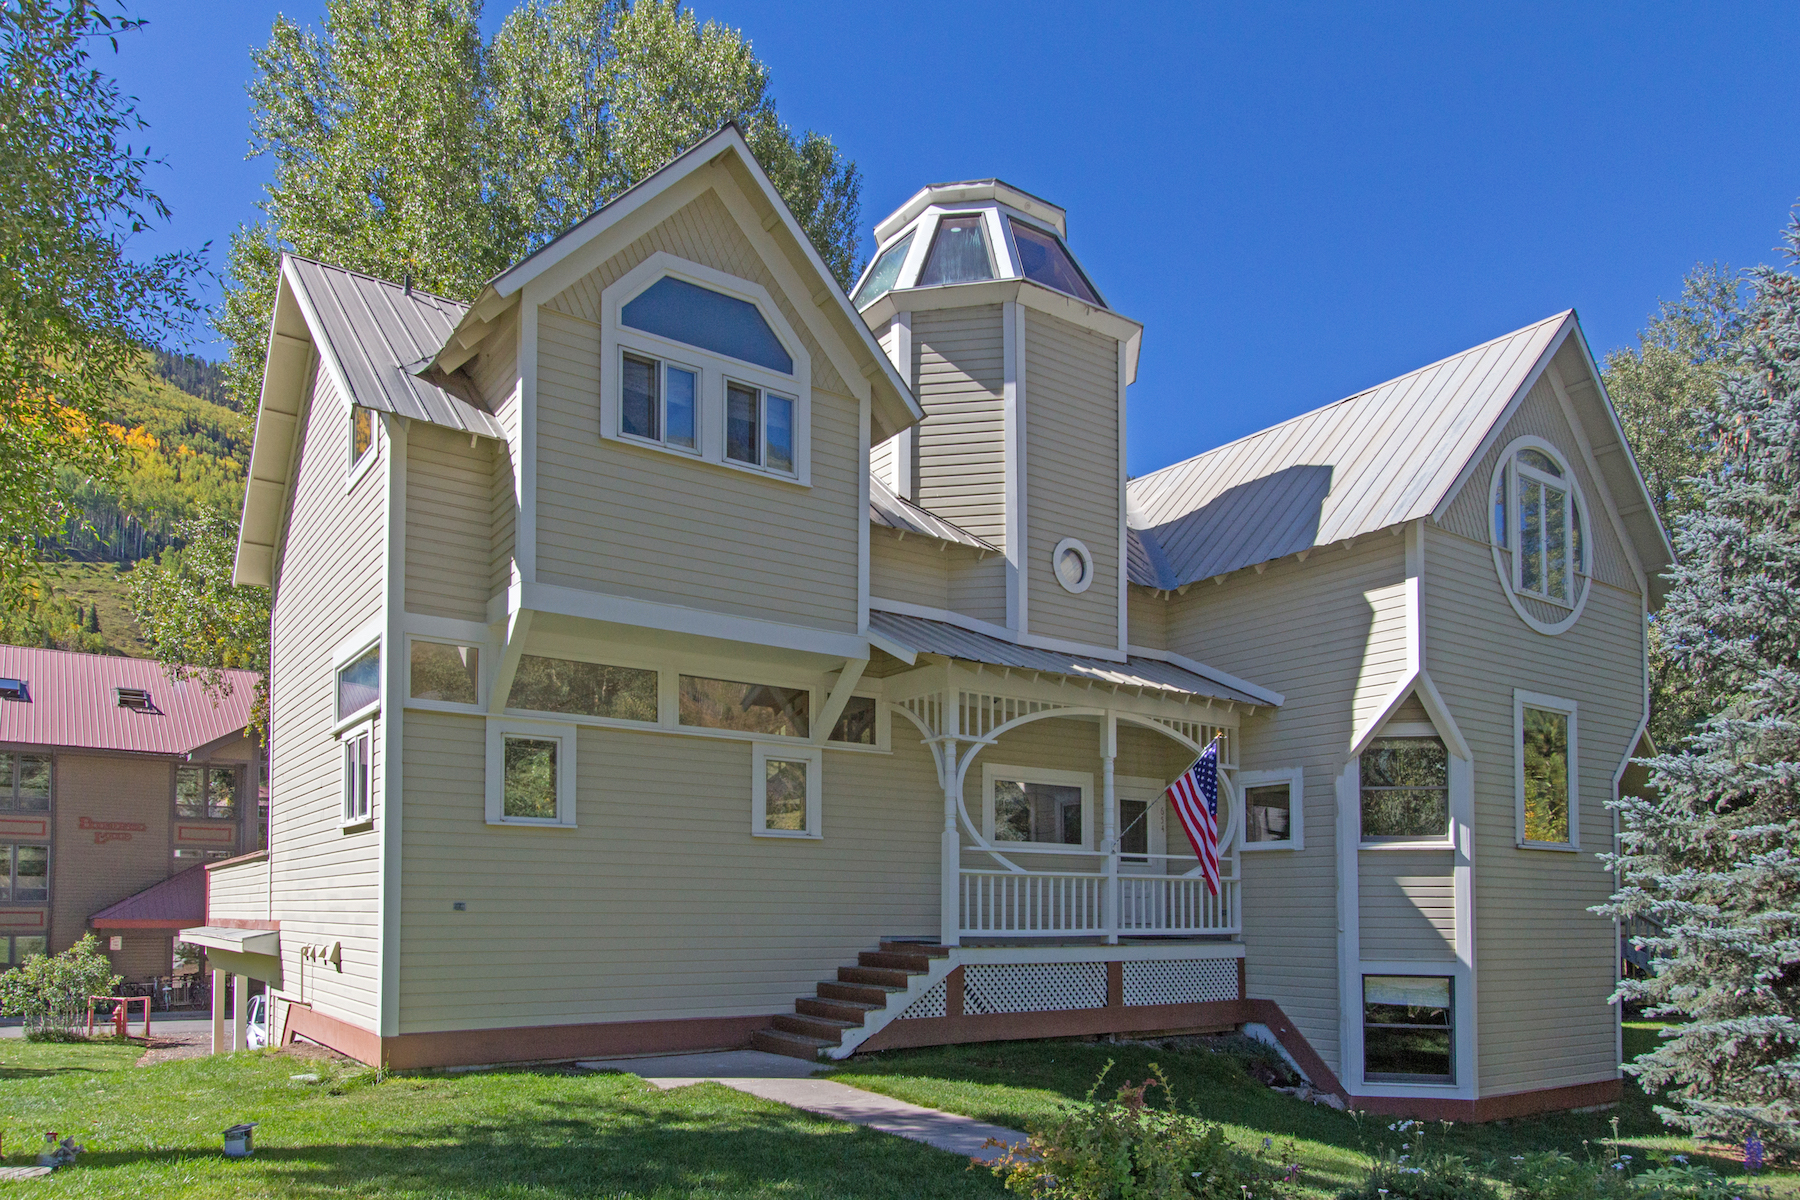 Таунхаус для того Продажа на Tower House 652 W. Colorado Ave E and West 654 Colorado Ave Telluride, Колорадо, 81435 Соединенные Штаты